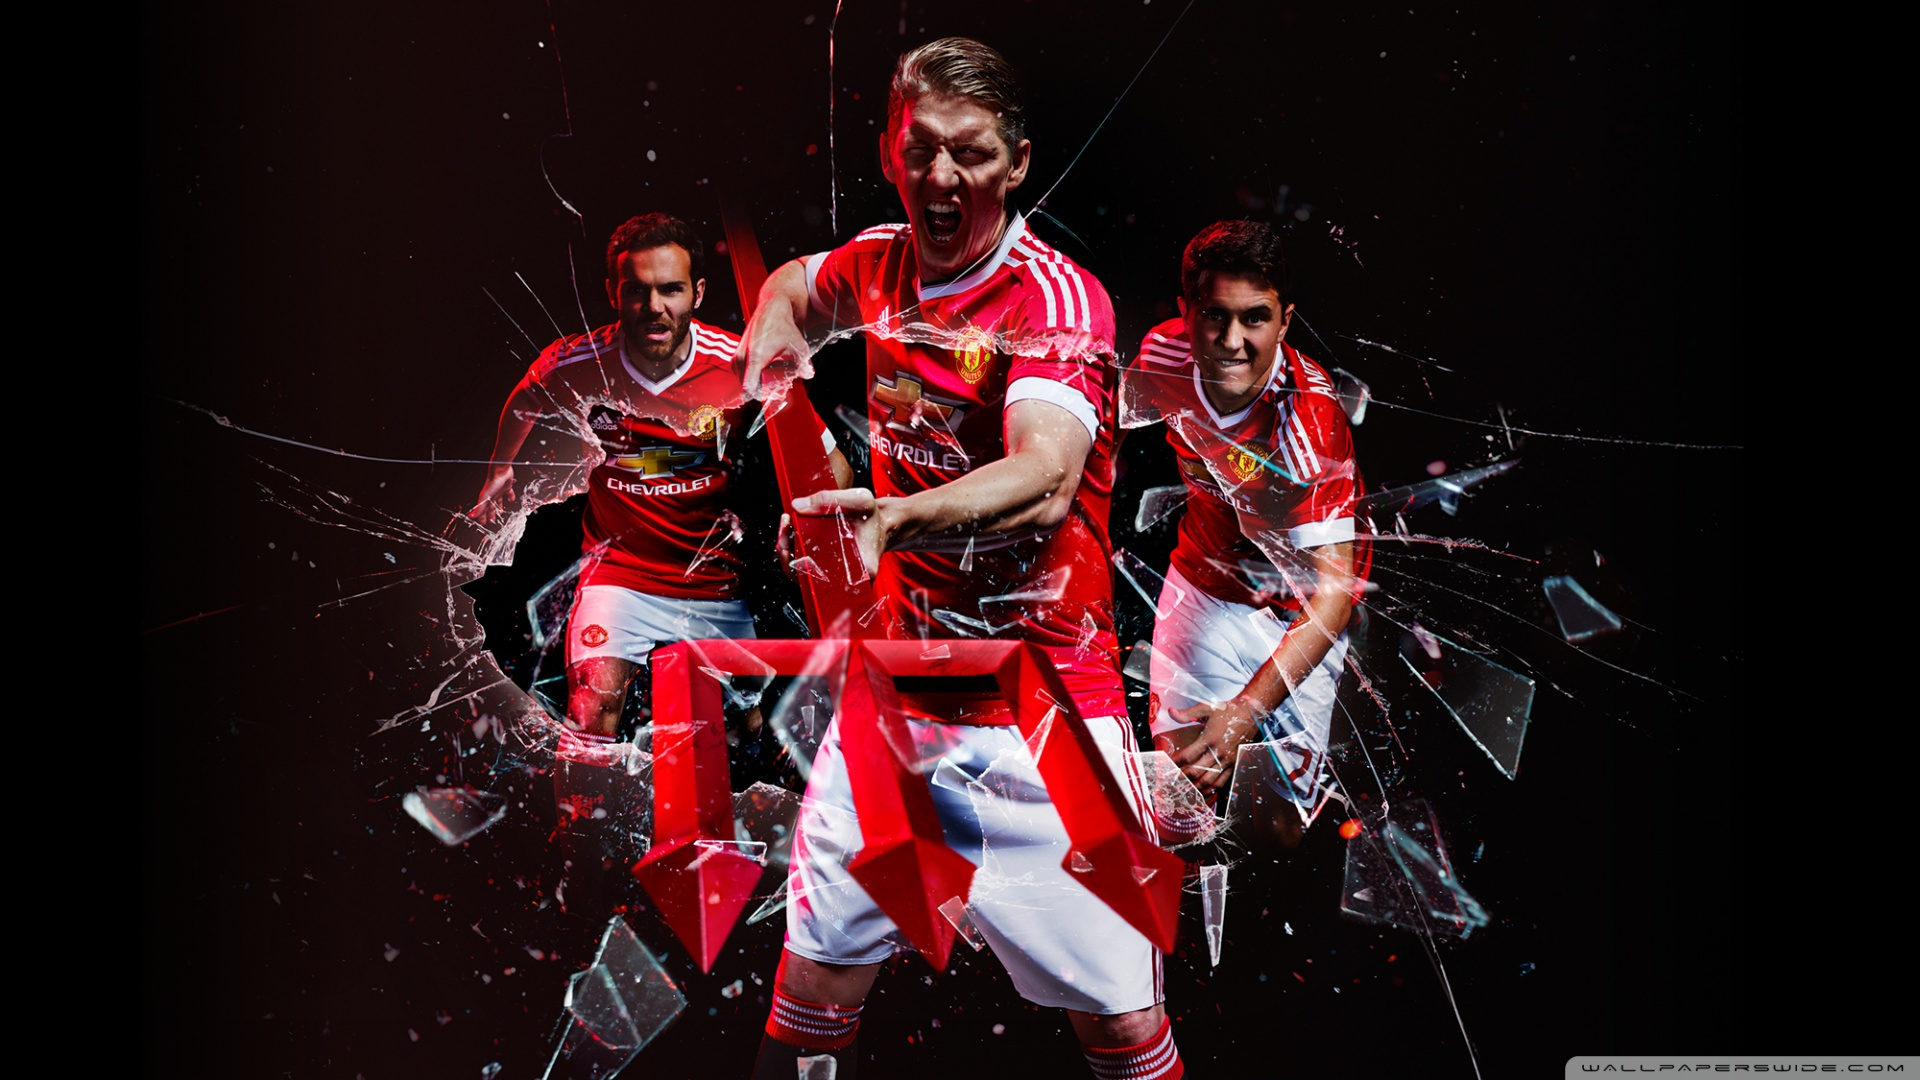 Download Free WallpaperManchester United New   Shirt Adidas